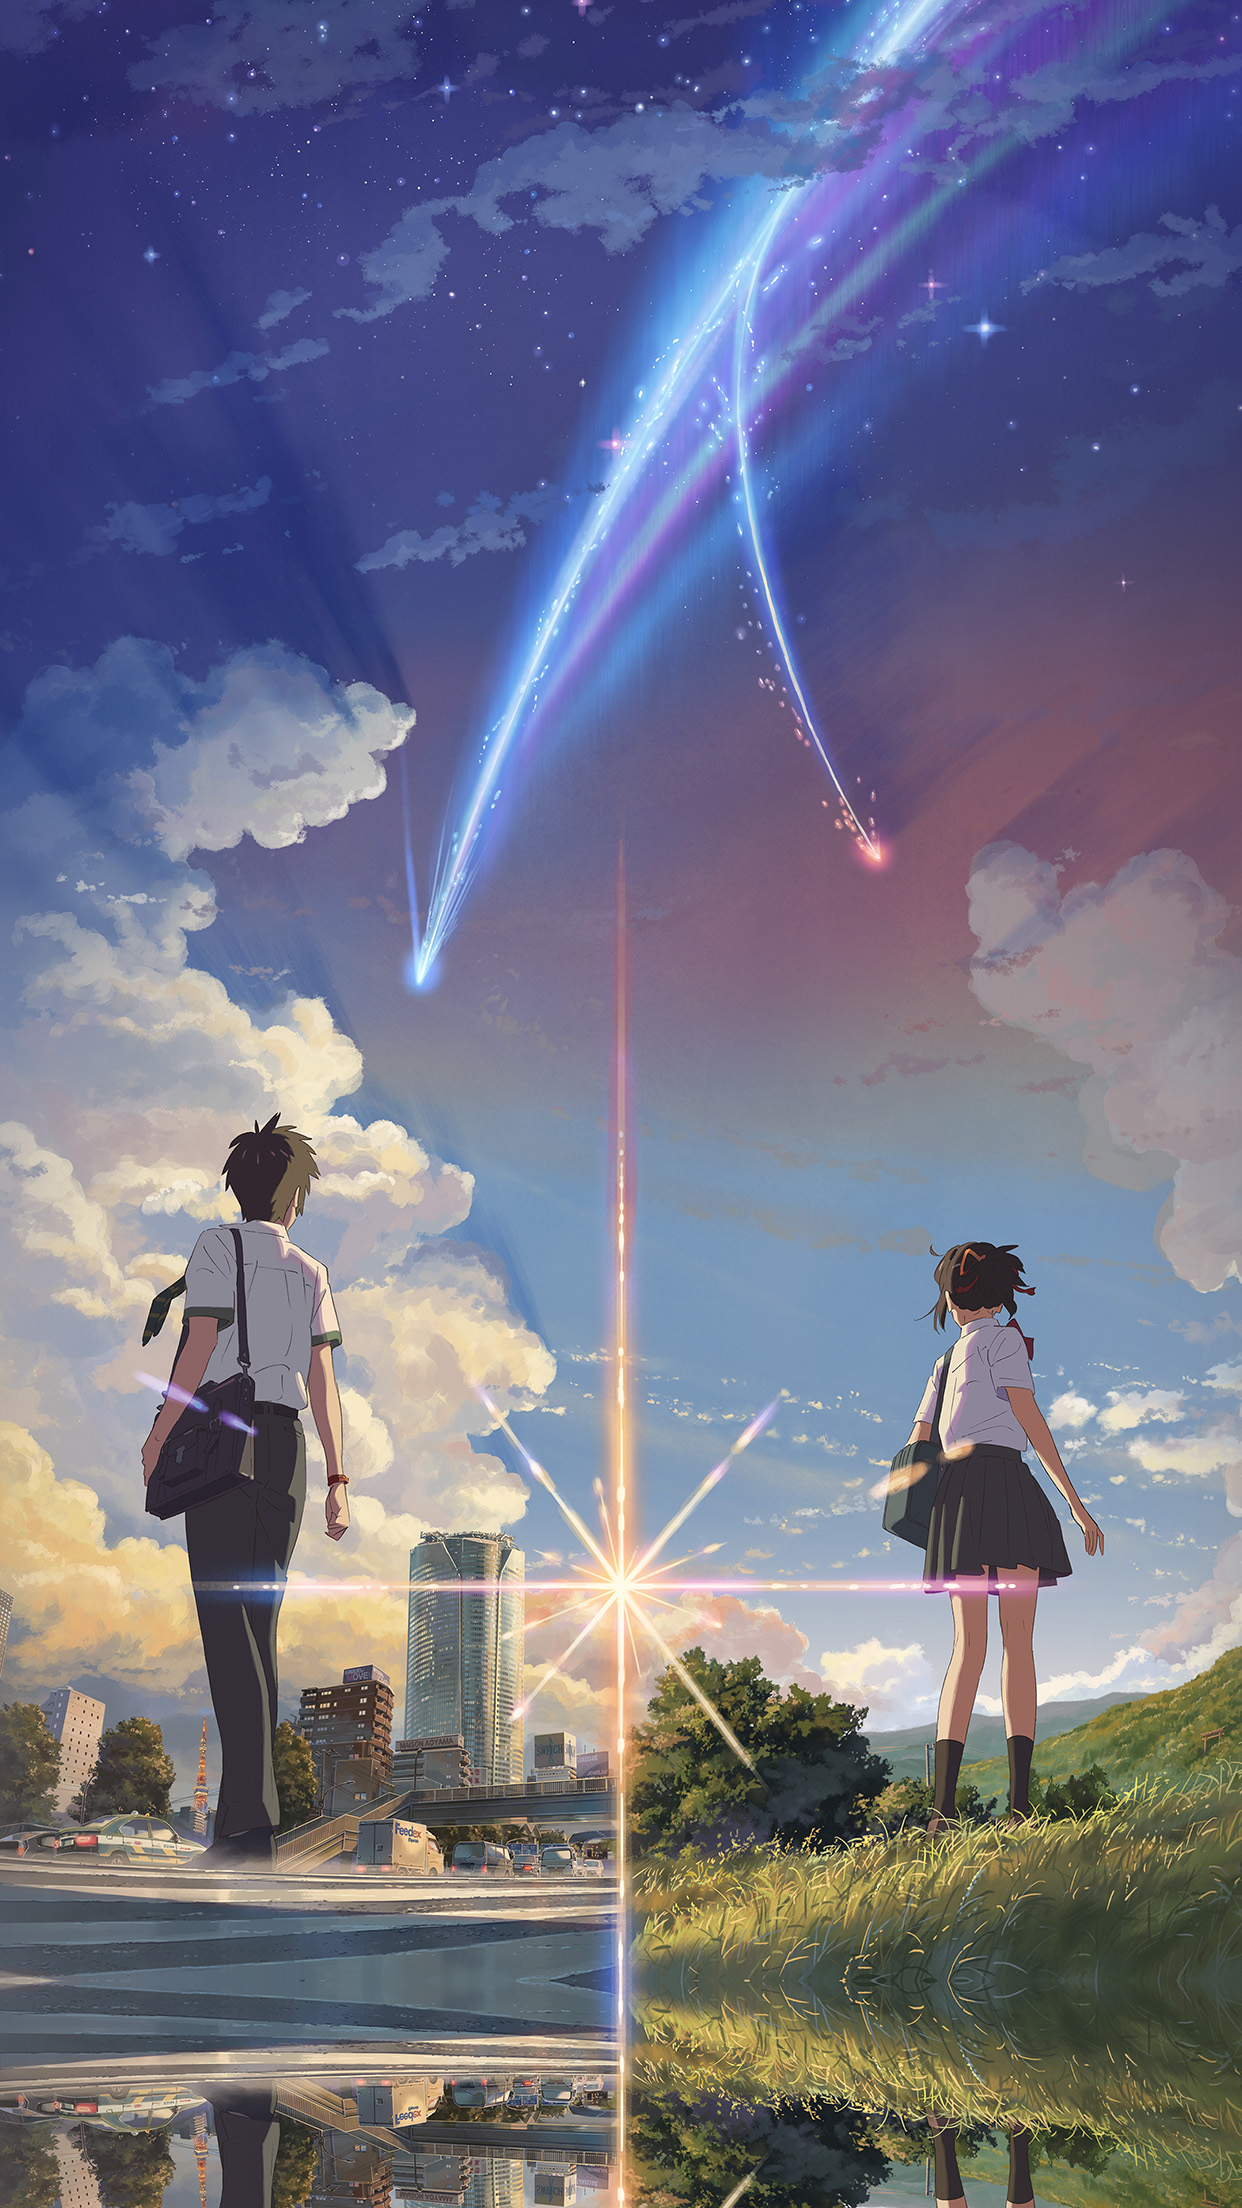 I love papers aw27 anime film yourname sky illustration art iphone 6 voltagebd Gallery